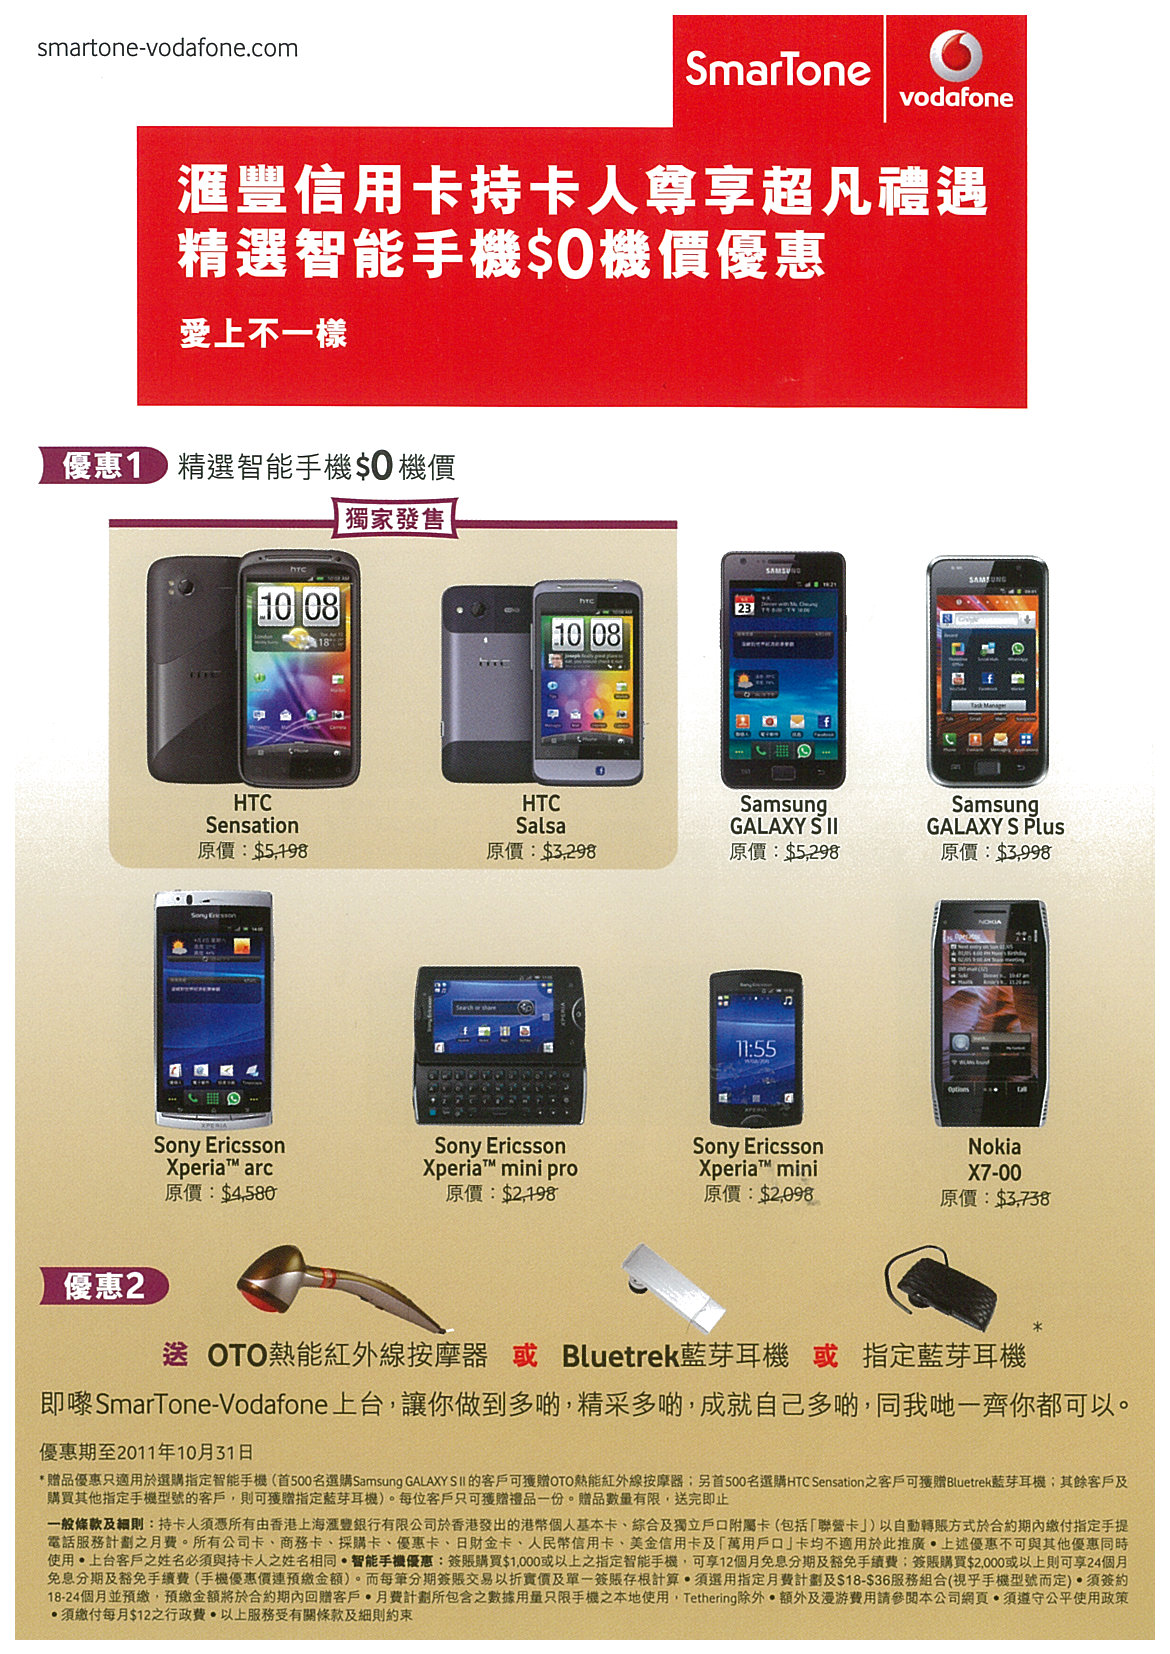 HSBC Credit Card holders can enjoy $0 smartphone & Free